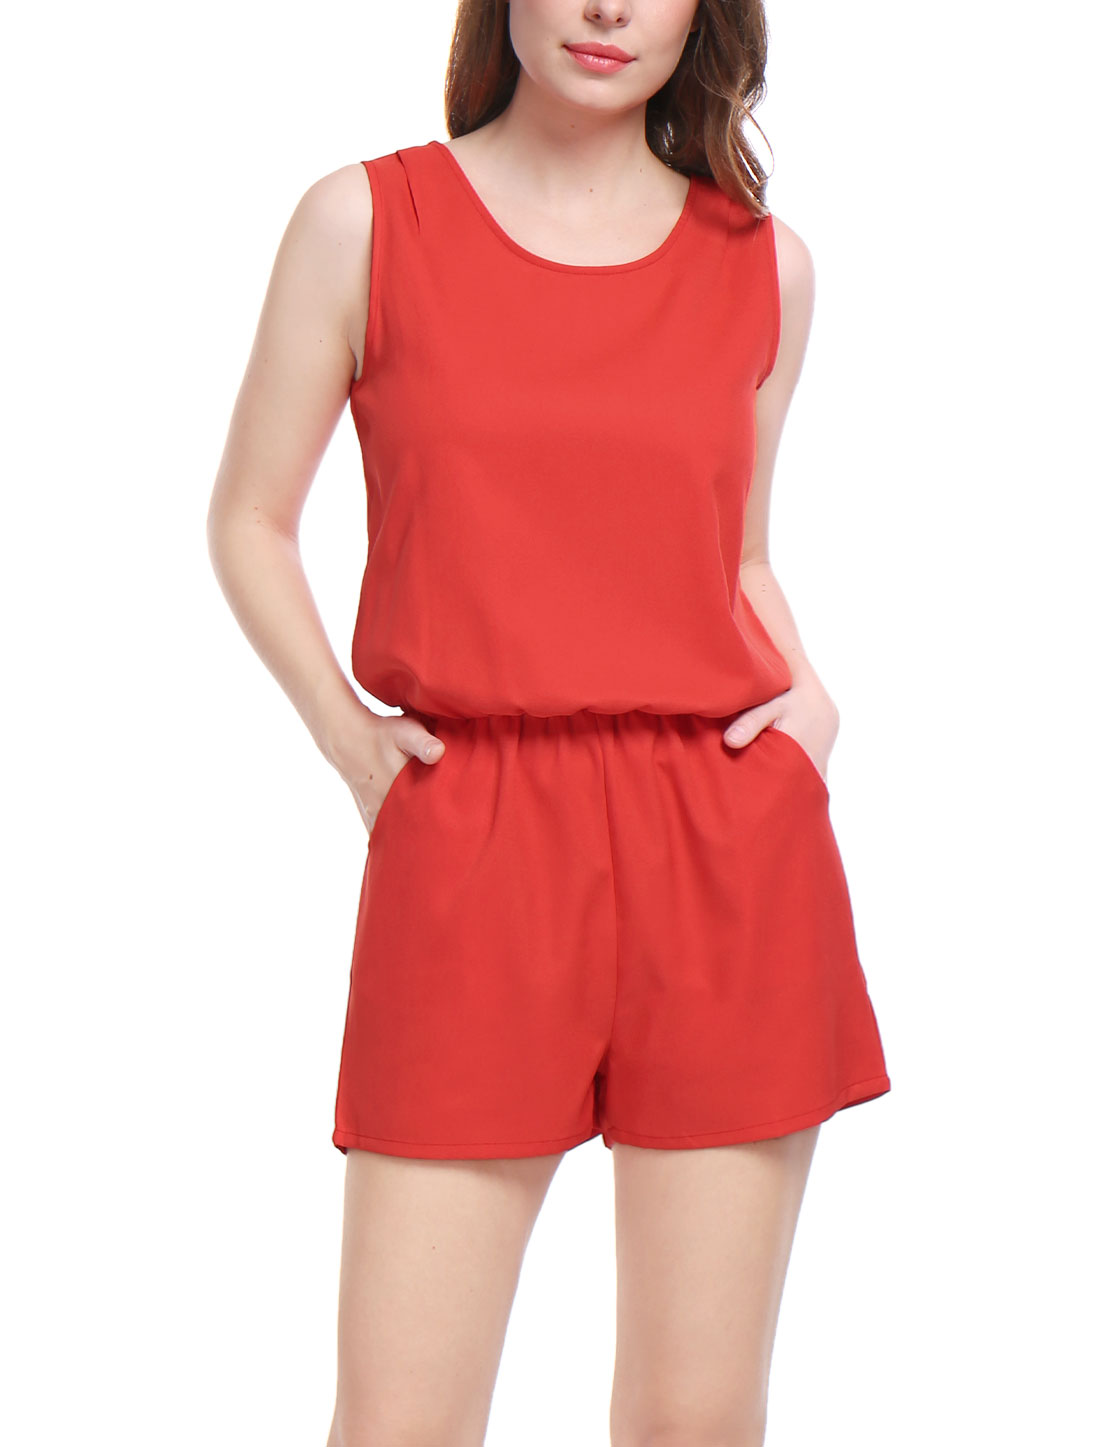 Women Sleeveless Cut Out Back Slant Pockets Short Jumpsuits Red S